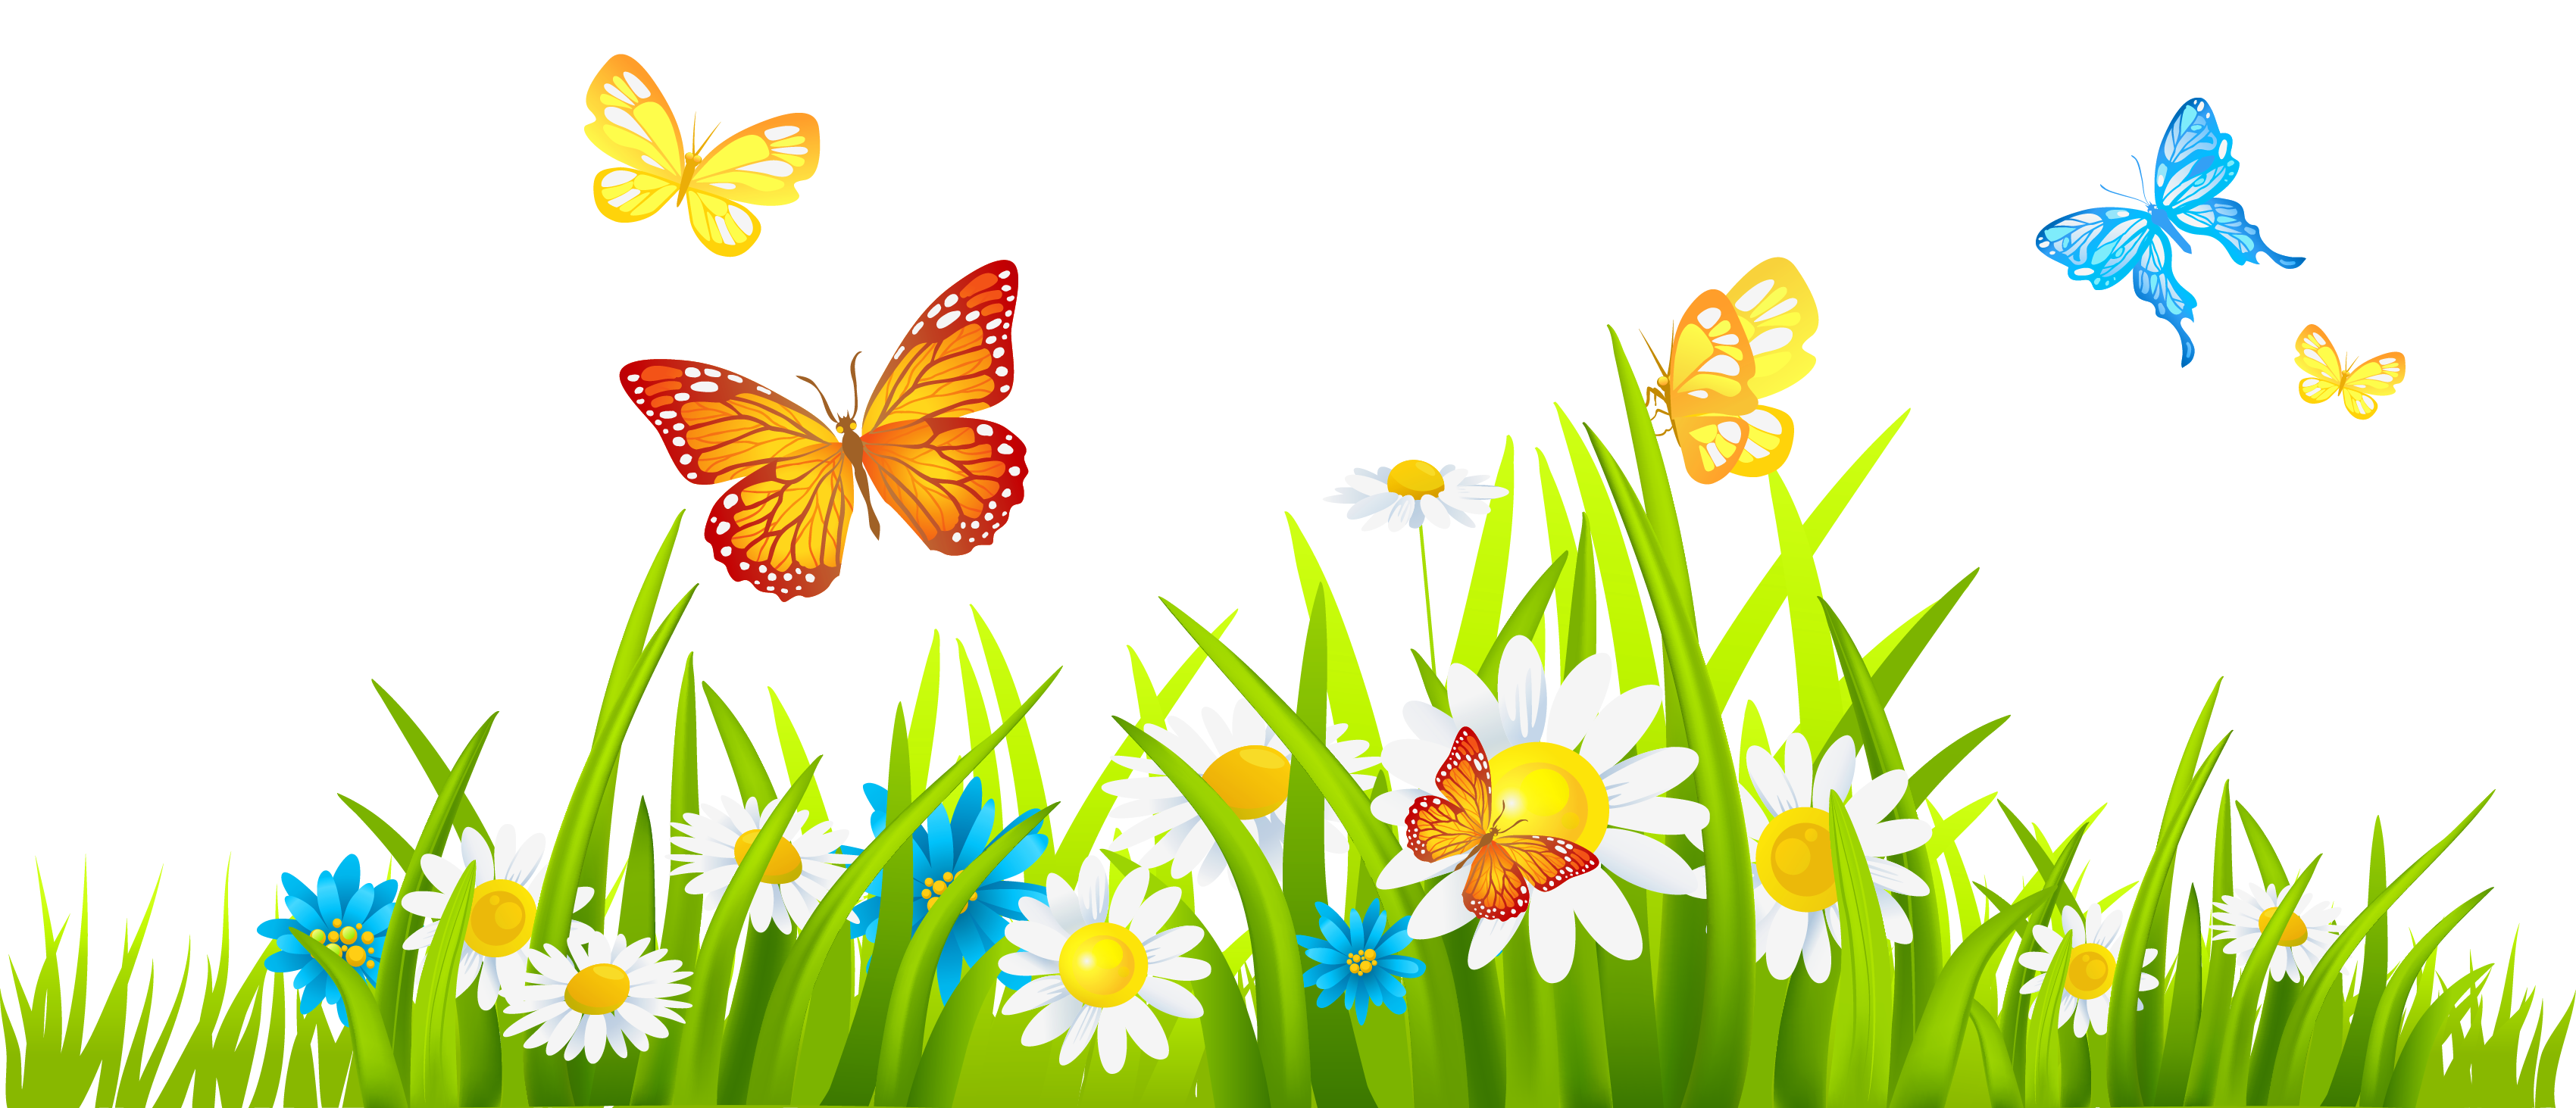 Grass and flowers clip art free clipart images clipartwiz.